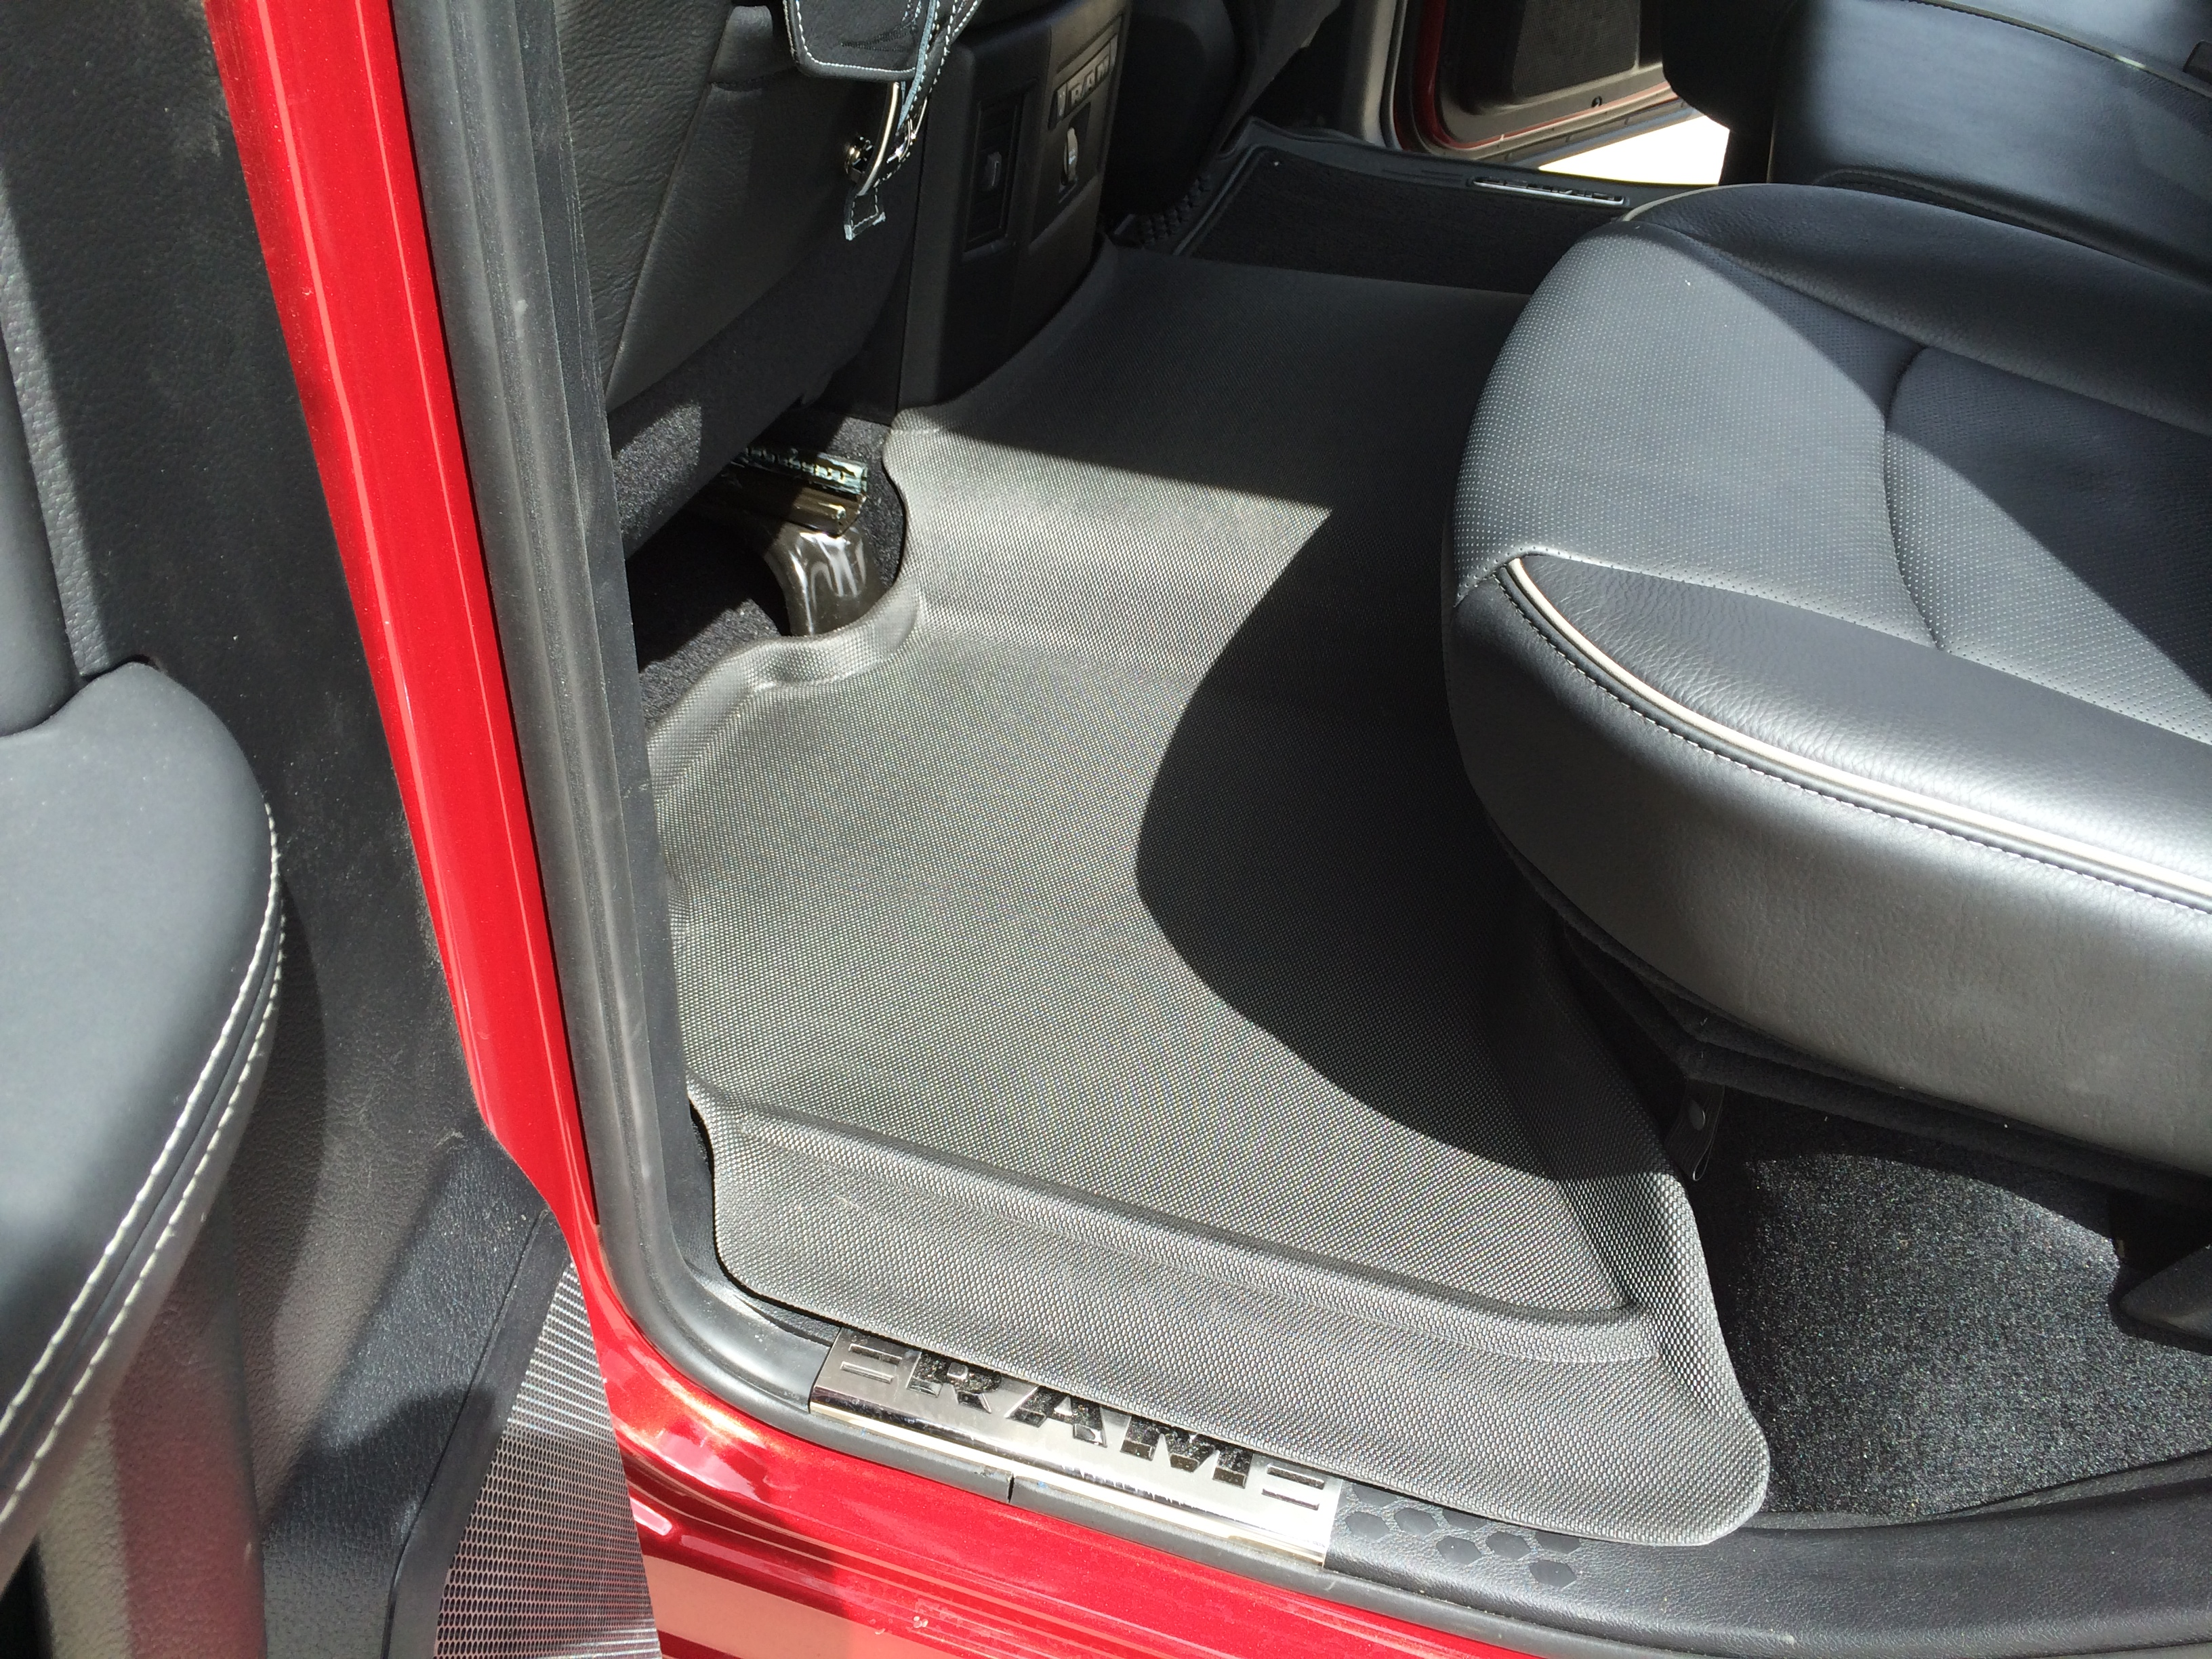 floor ram page forum mats guard liners img diesel or attachment weathertech u weatherguard mat appearance